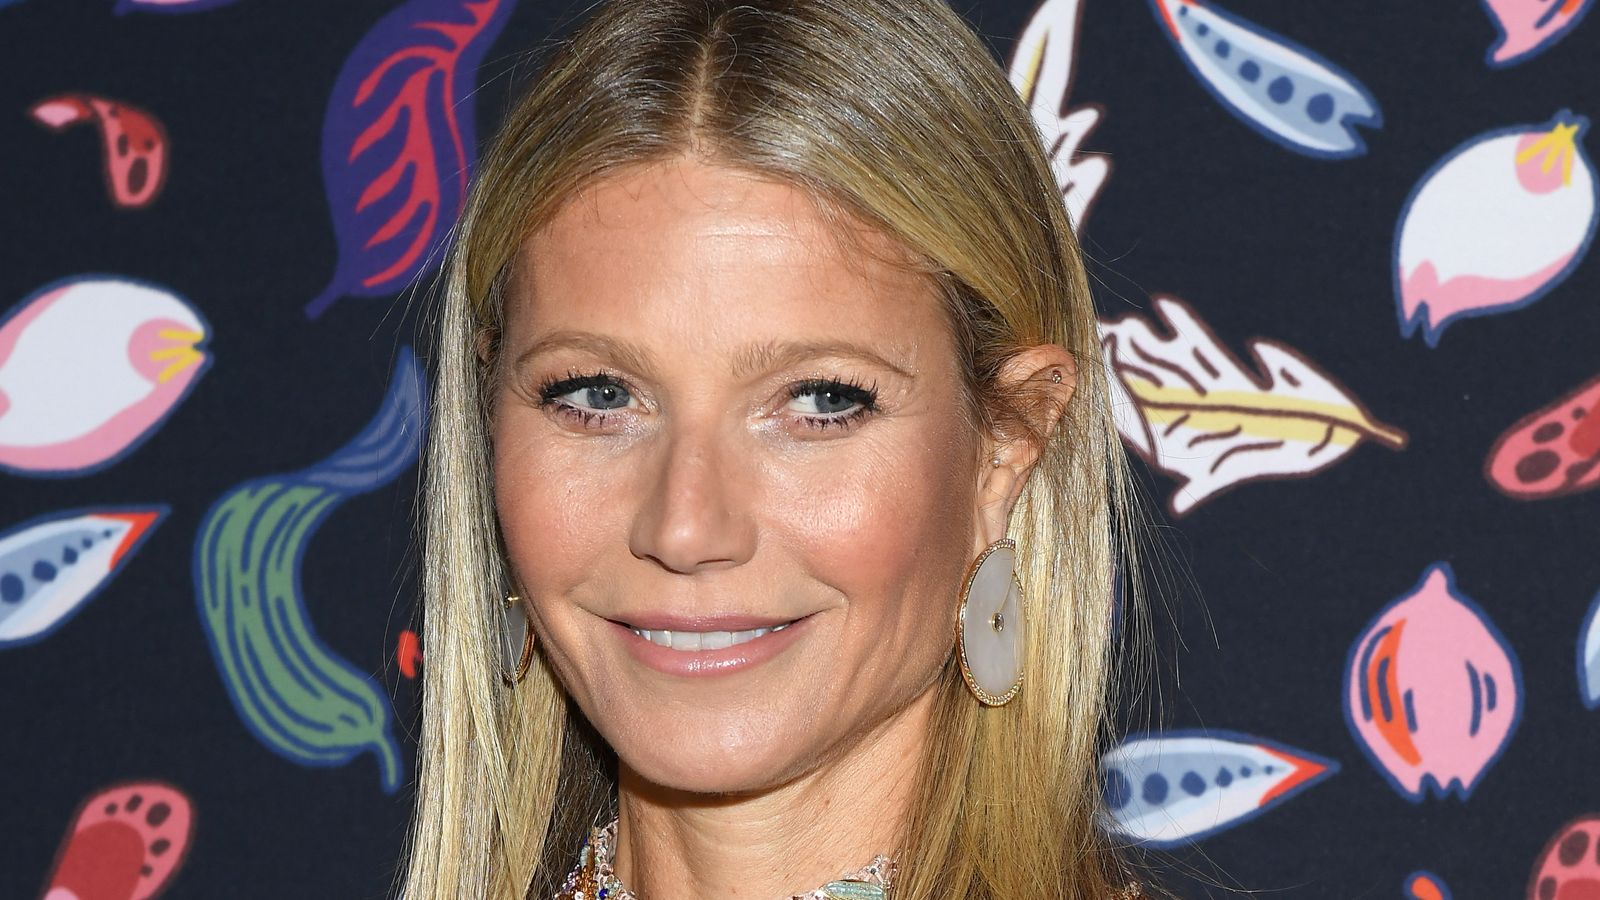 Gwyneth Paltrow reflects on 'conscious uncoupling' backlash after Chris Martin split thumbnail